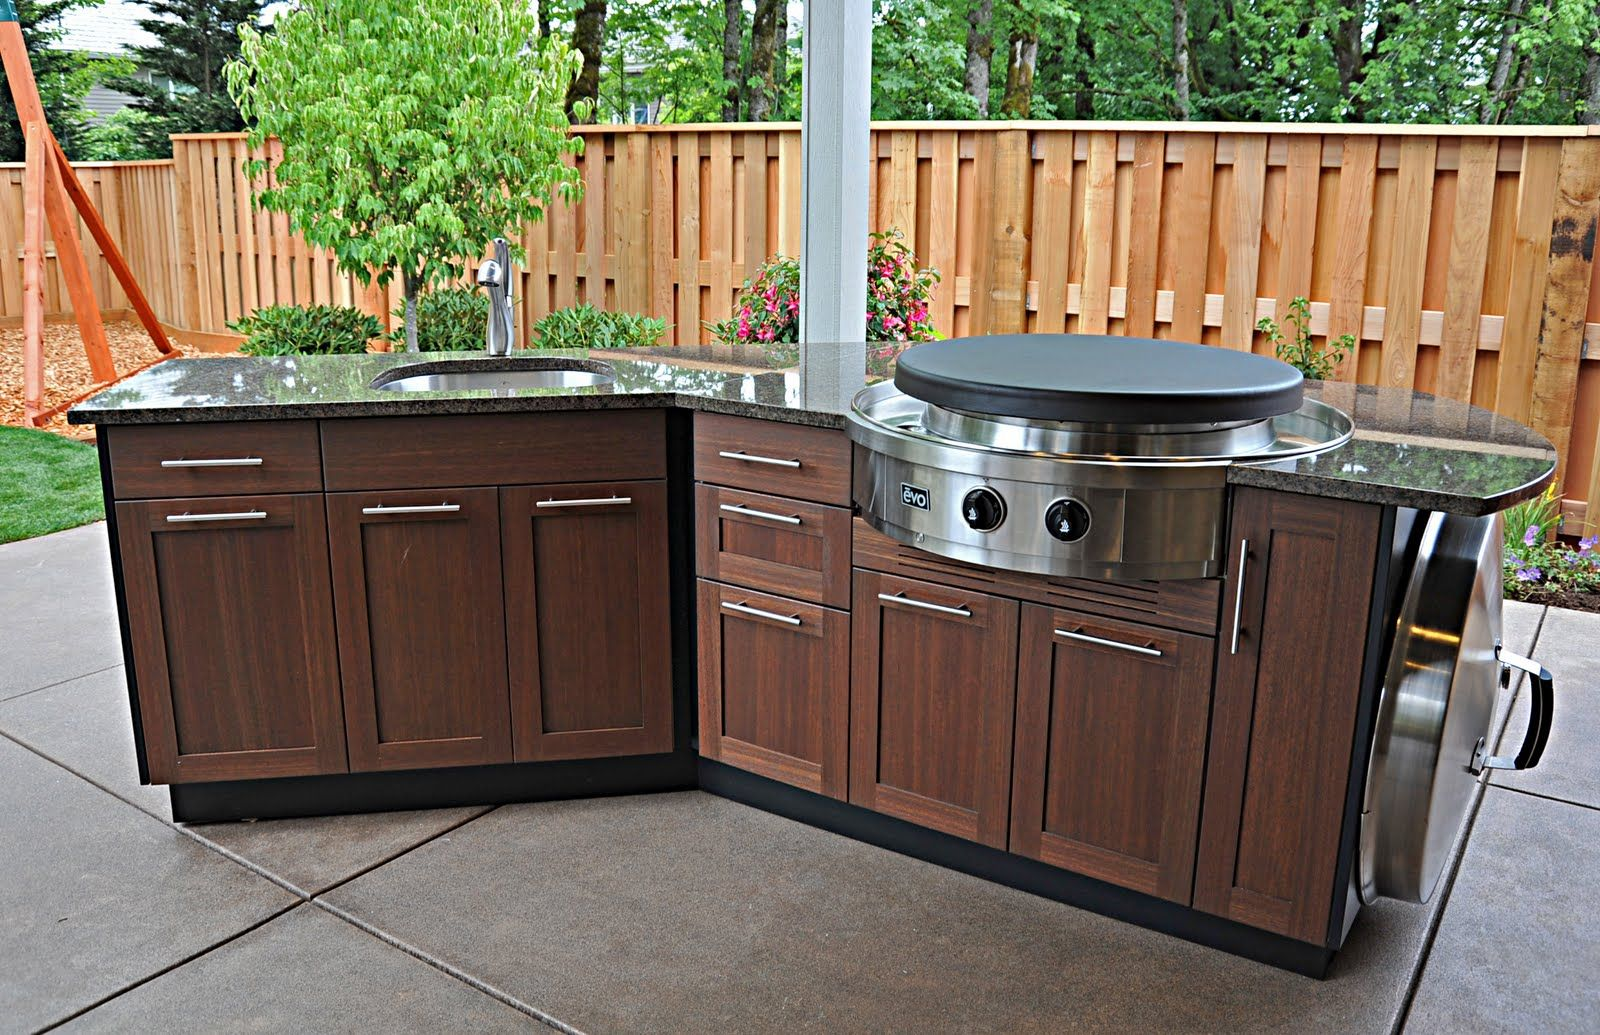 Stunning Do It Yourself Outdoor Kitchens Kits Modular Kit And